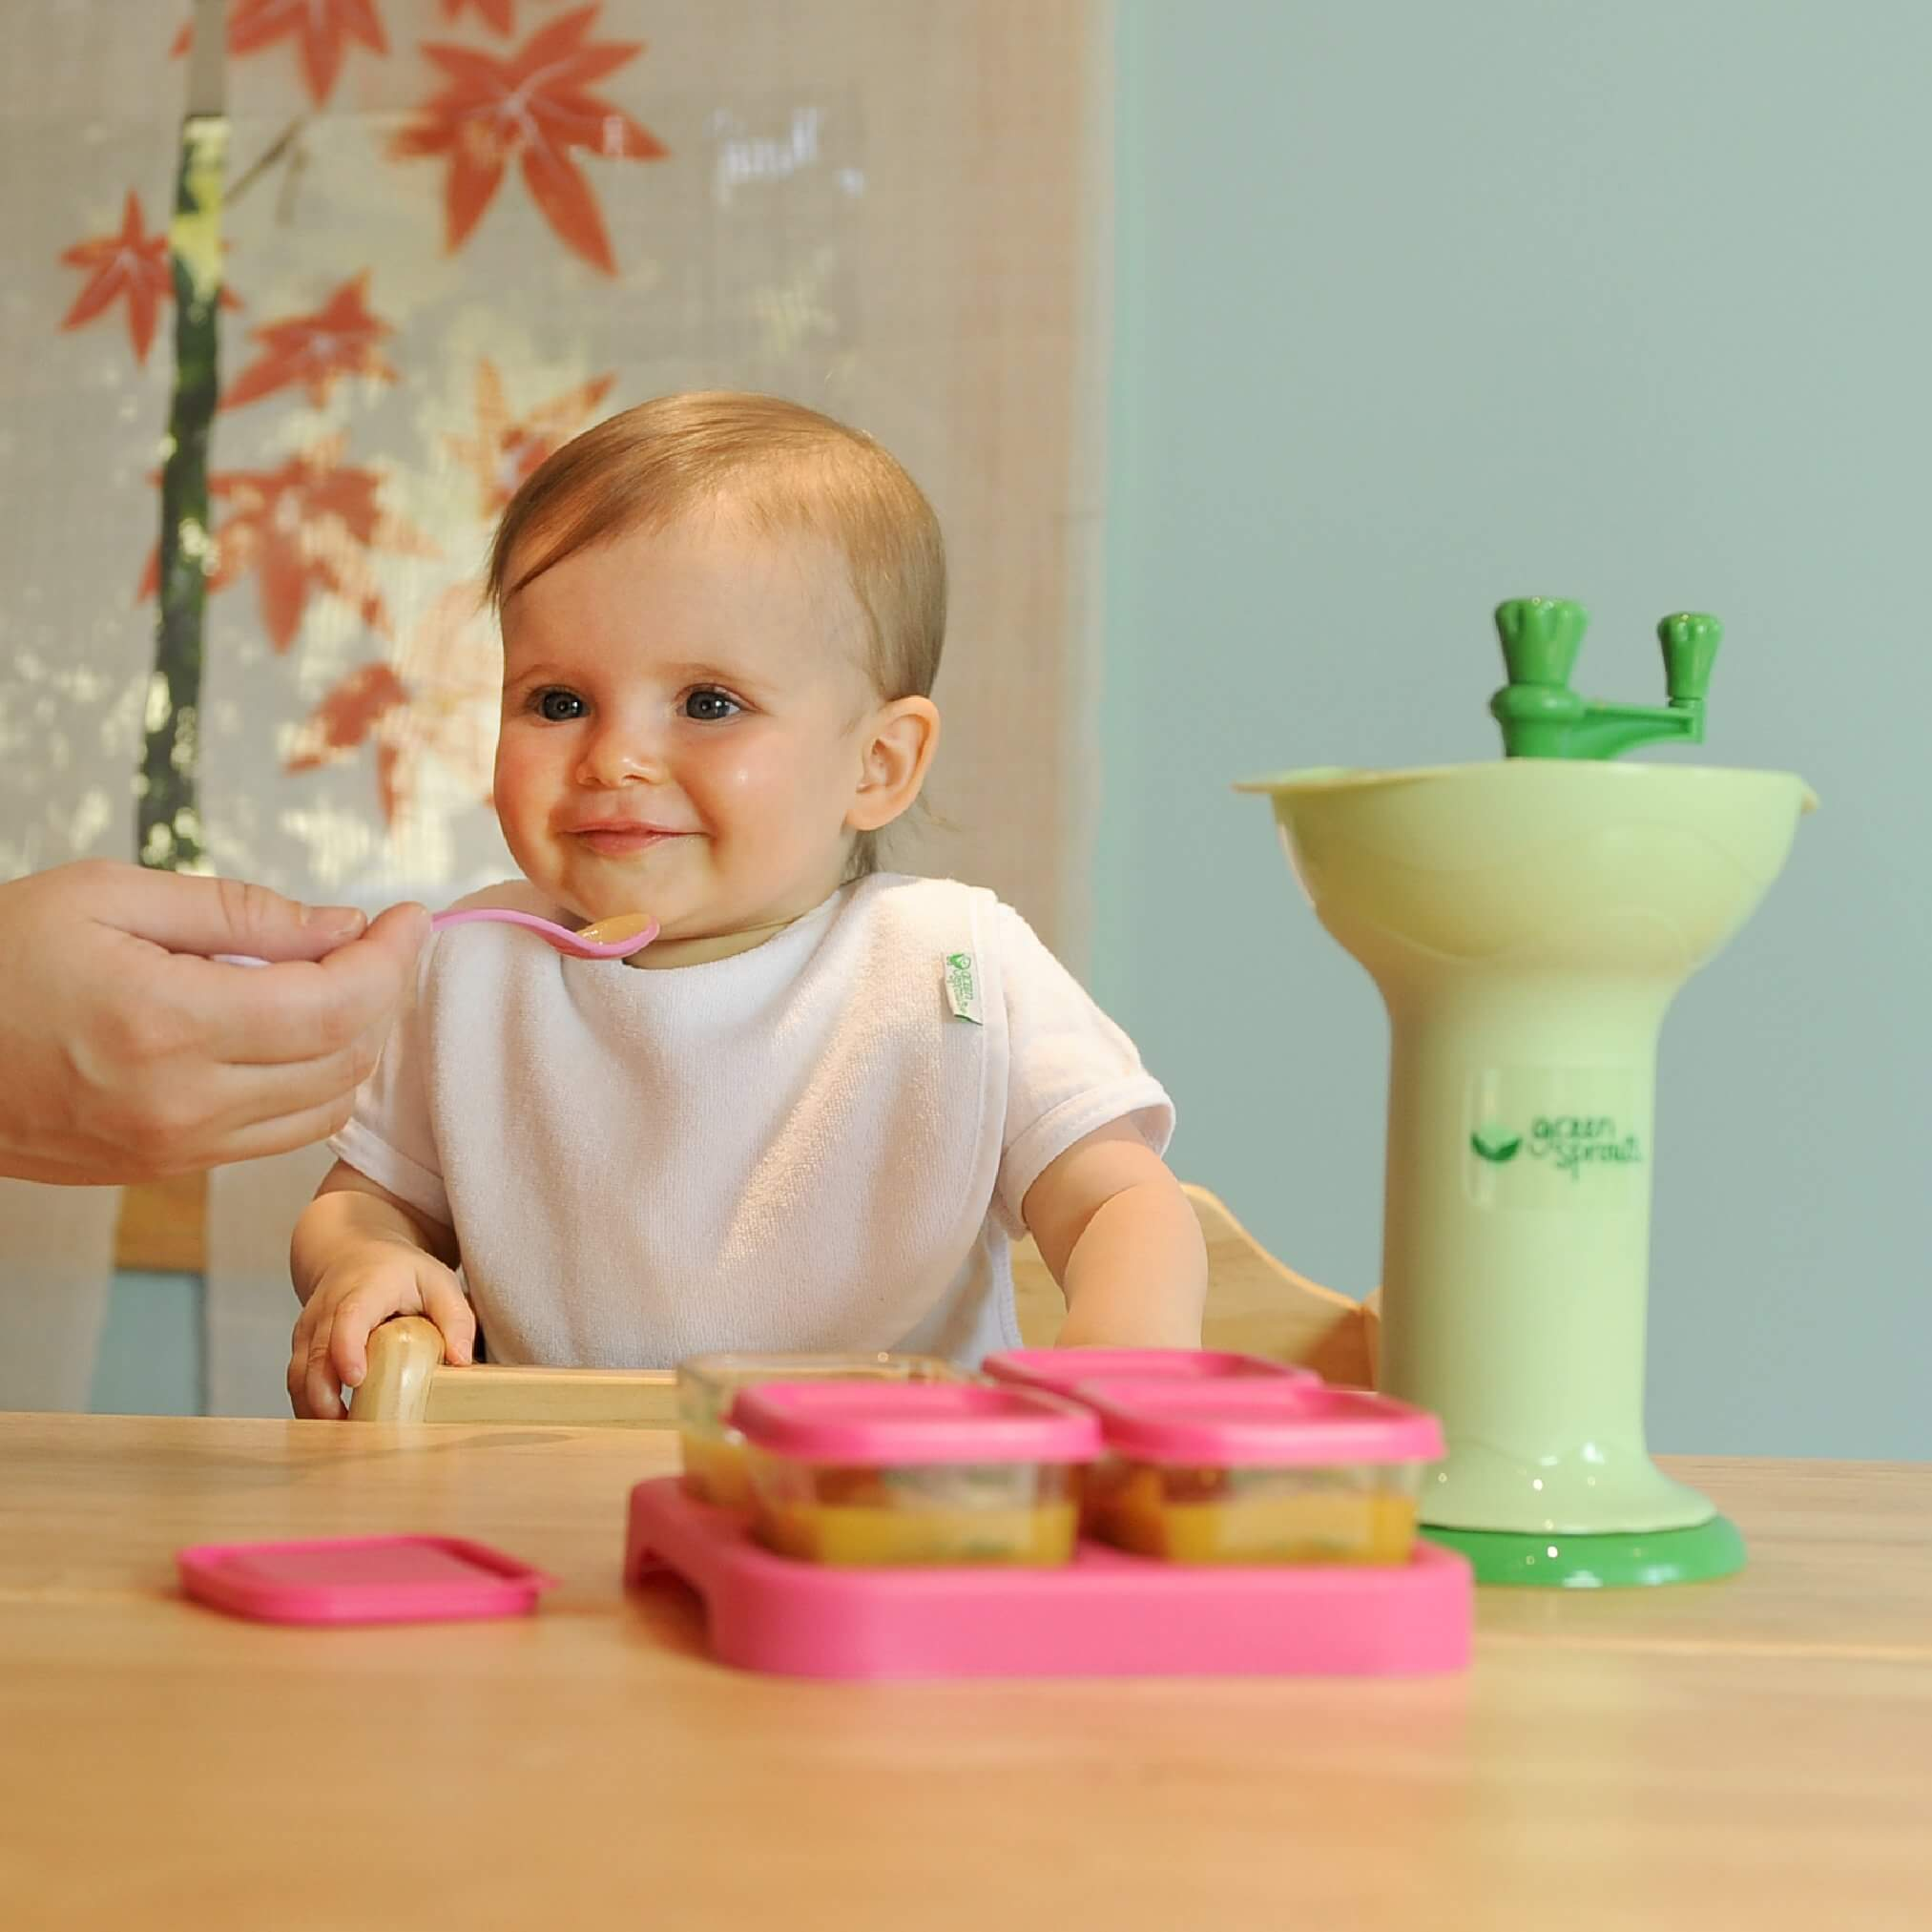 puree baby food, best baby food containers, Green Sprouts Baby Food Mill, baby food maker